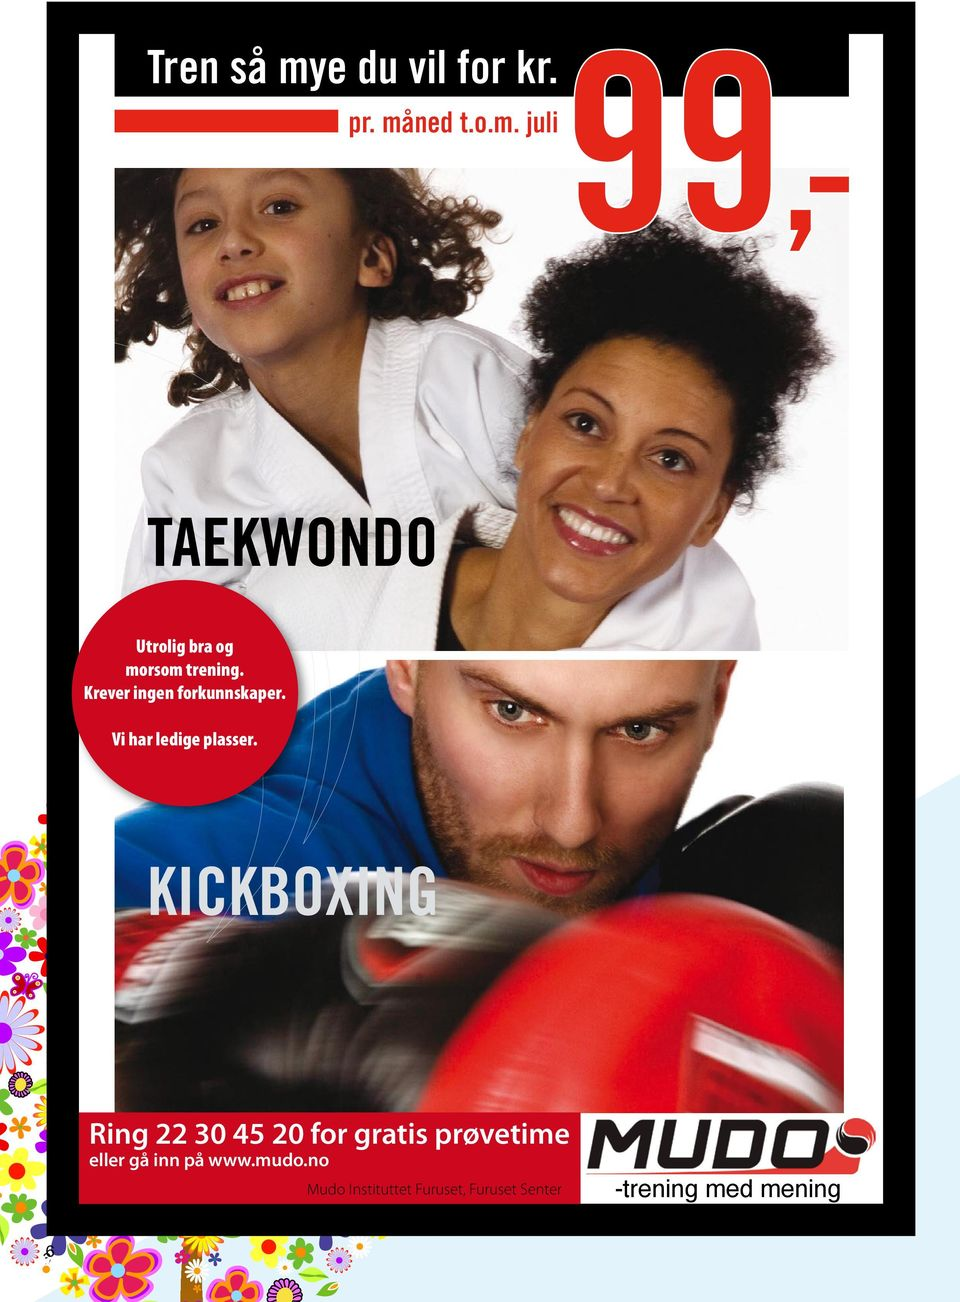 KICKBOXING Ring 22 30 45 20 for gratis prøvetime mudo.